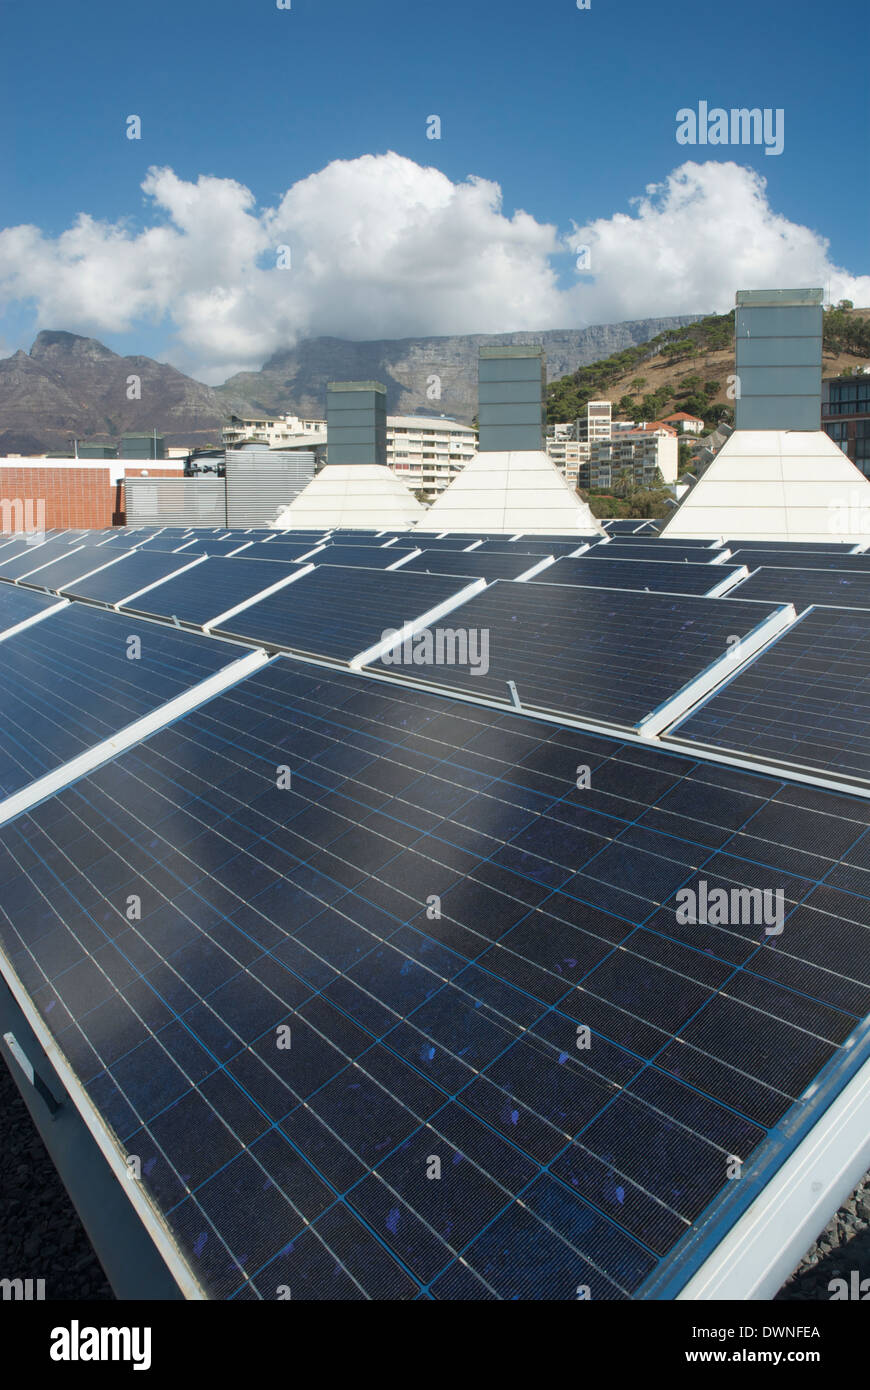 Solar panels on the roof of the BP Building, Cape Town, South Africa, March 2009 - Stock Image